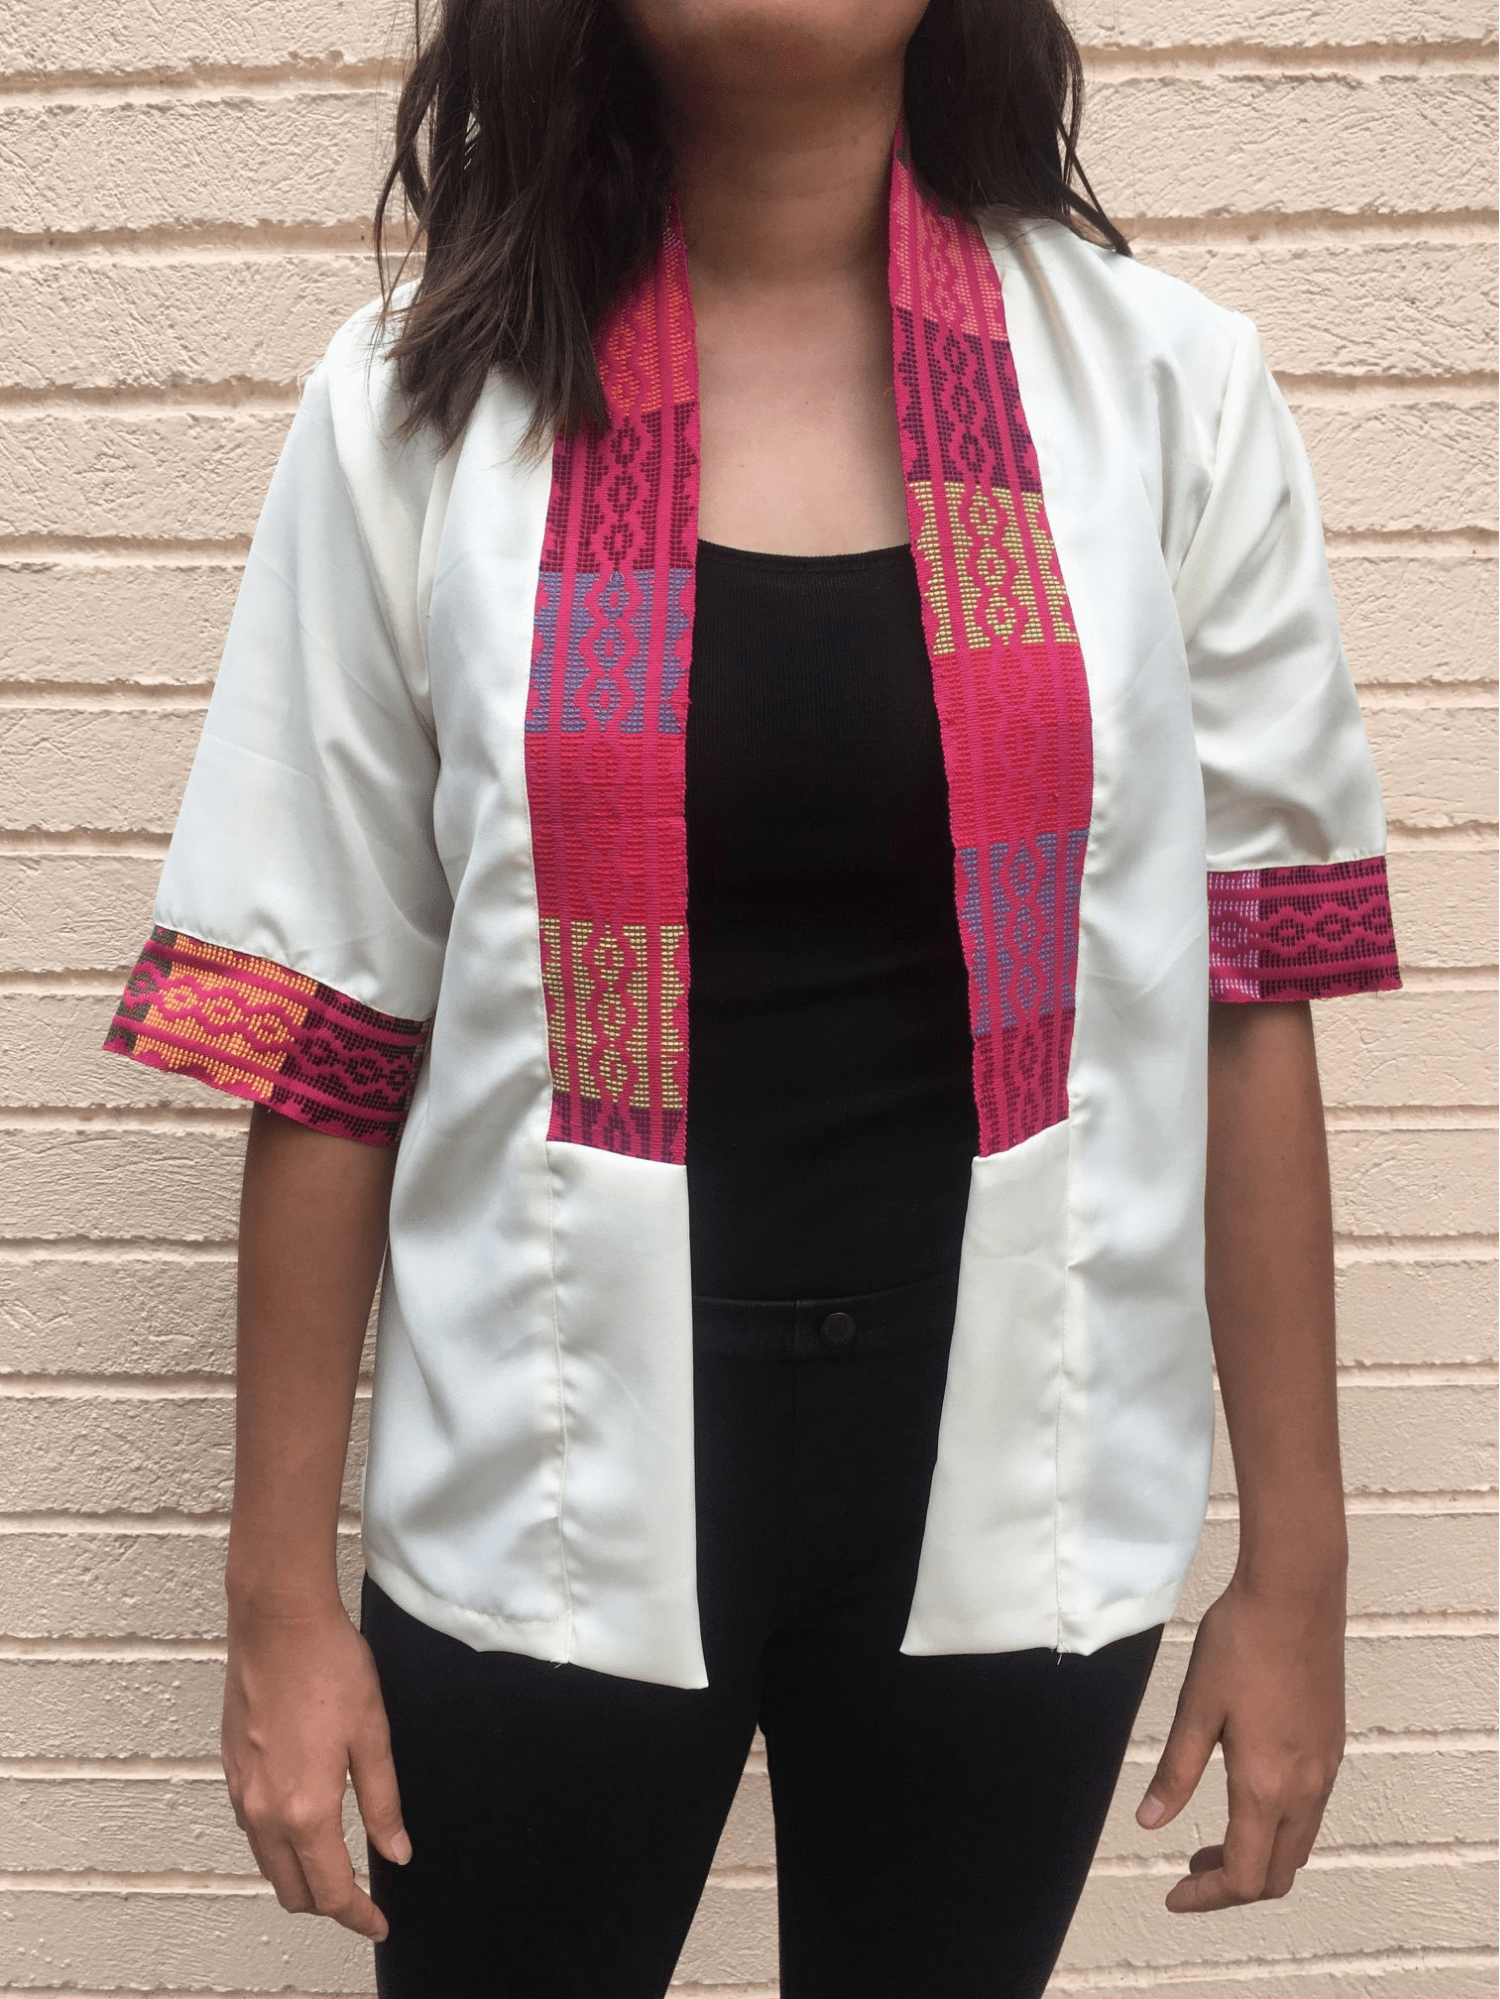 clothes from indigenous fabrics - blazer